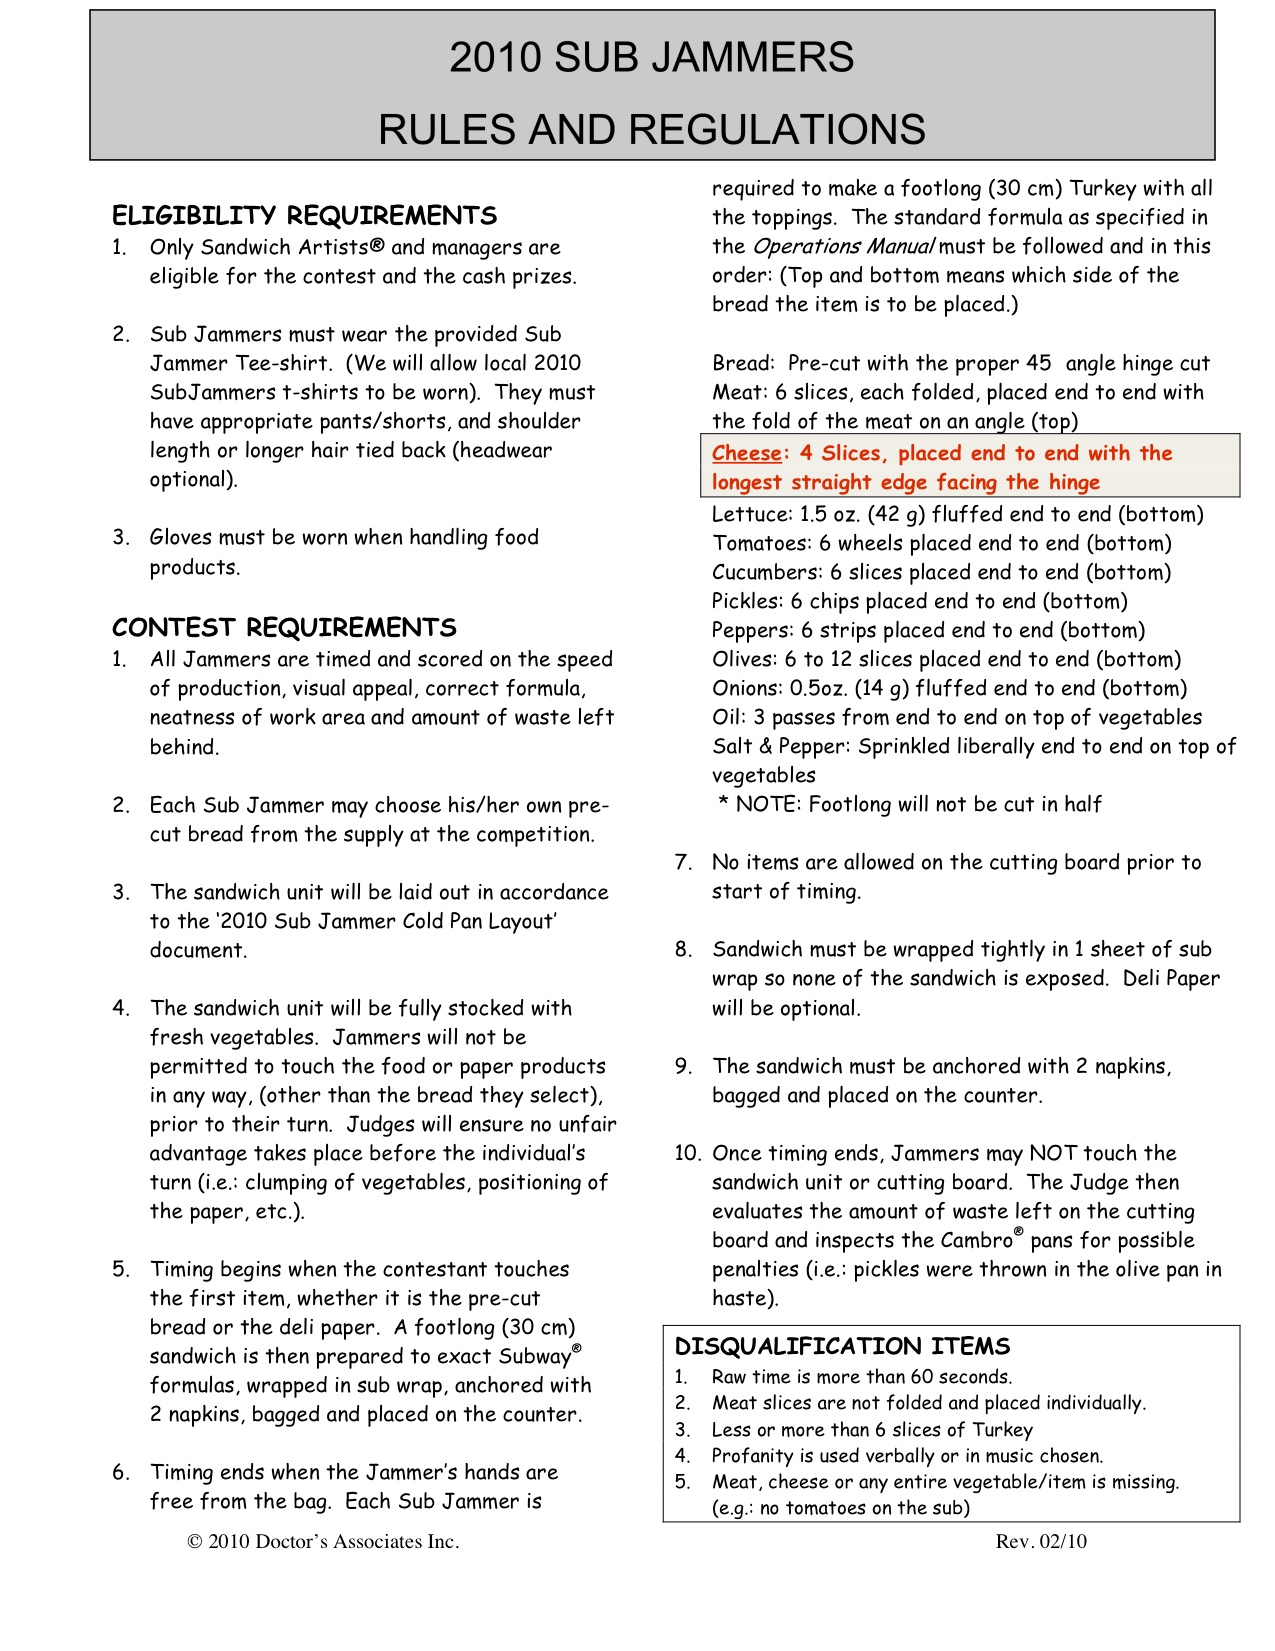 2010 Sub Jammers Rules and Regulations